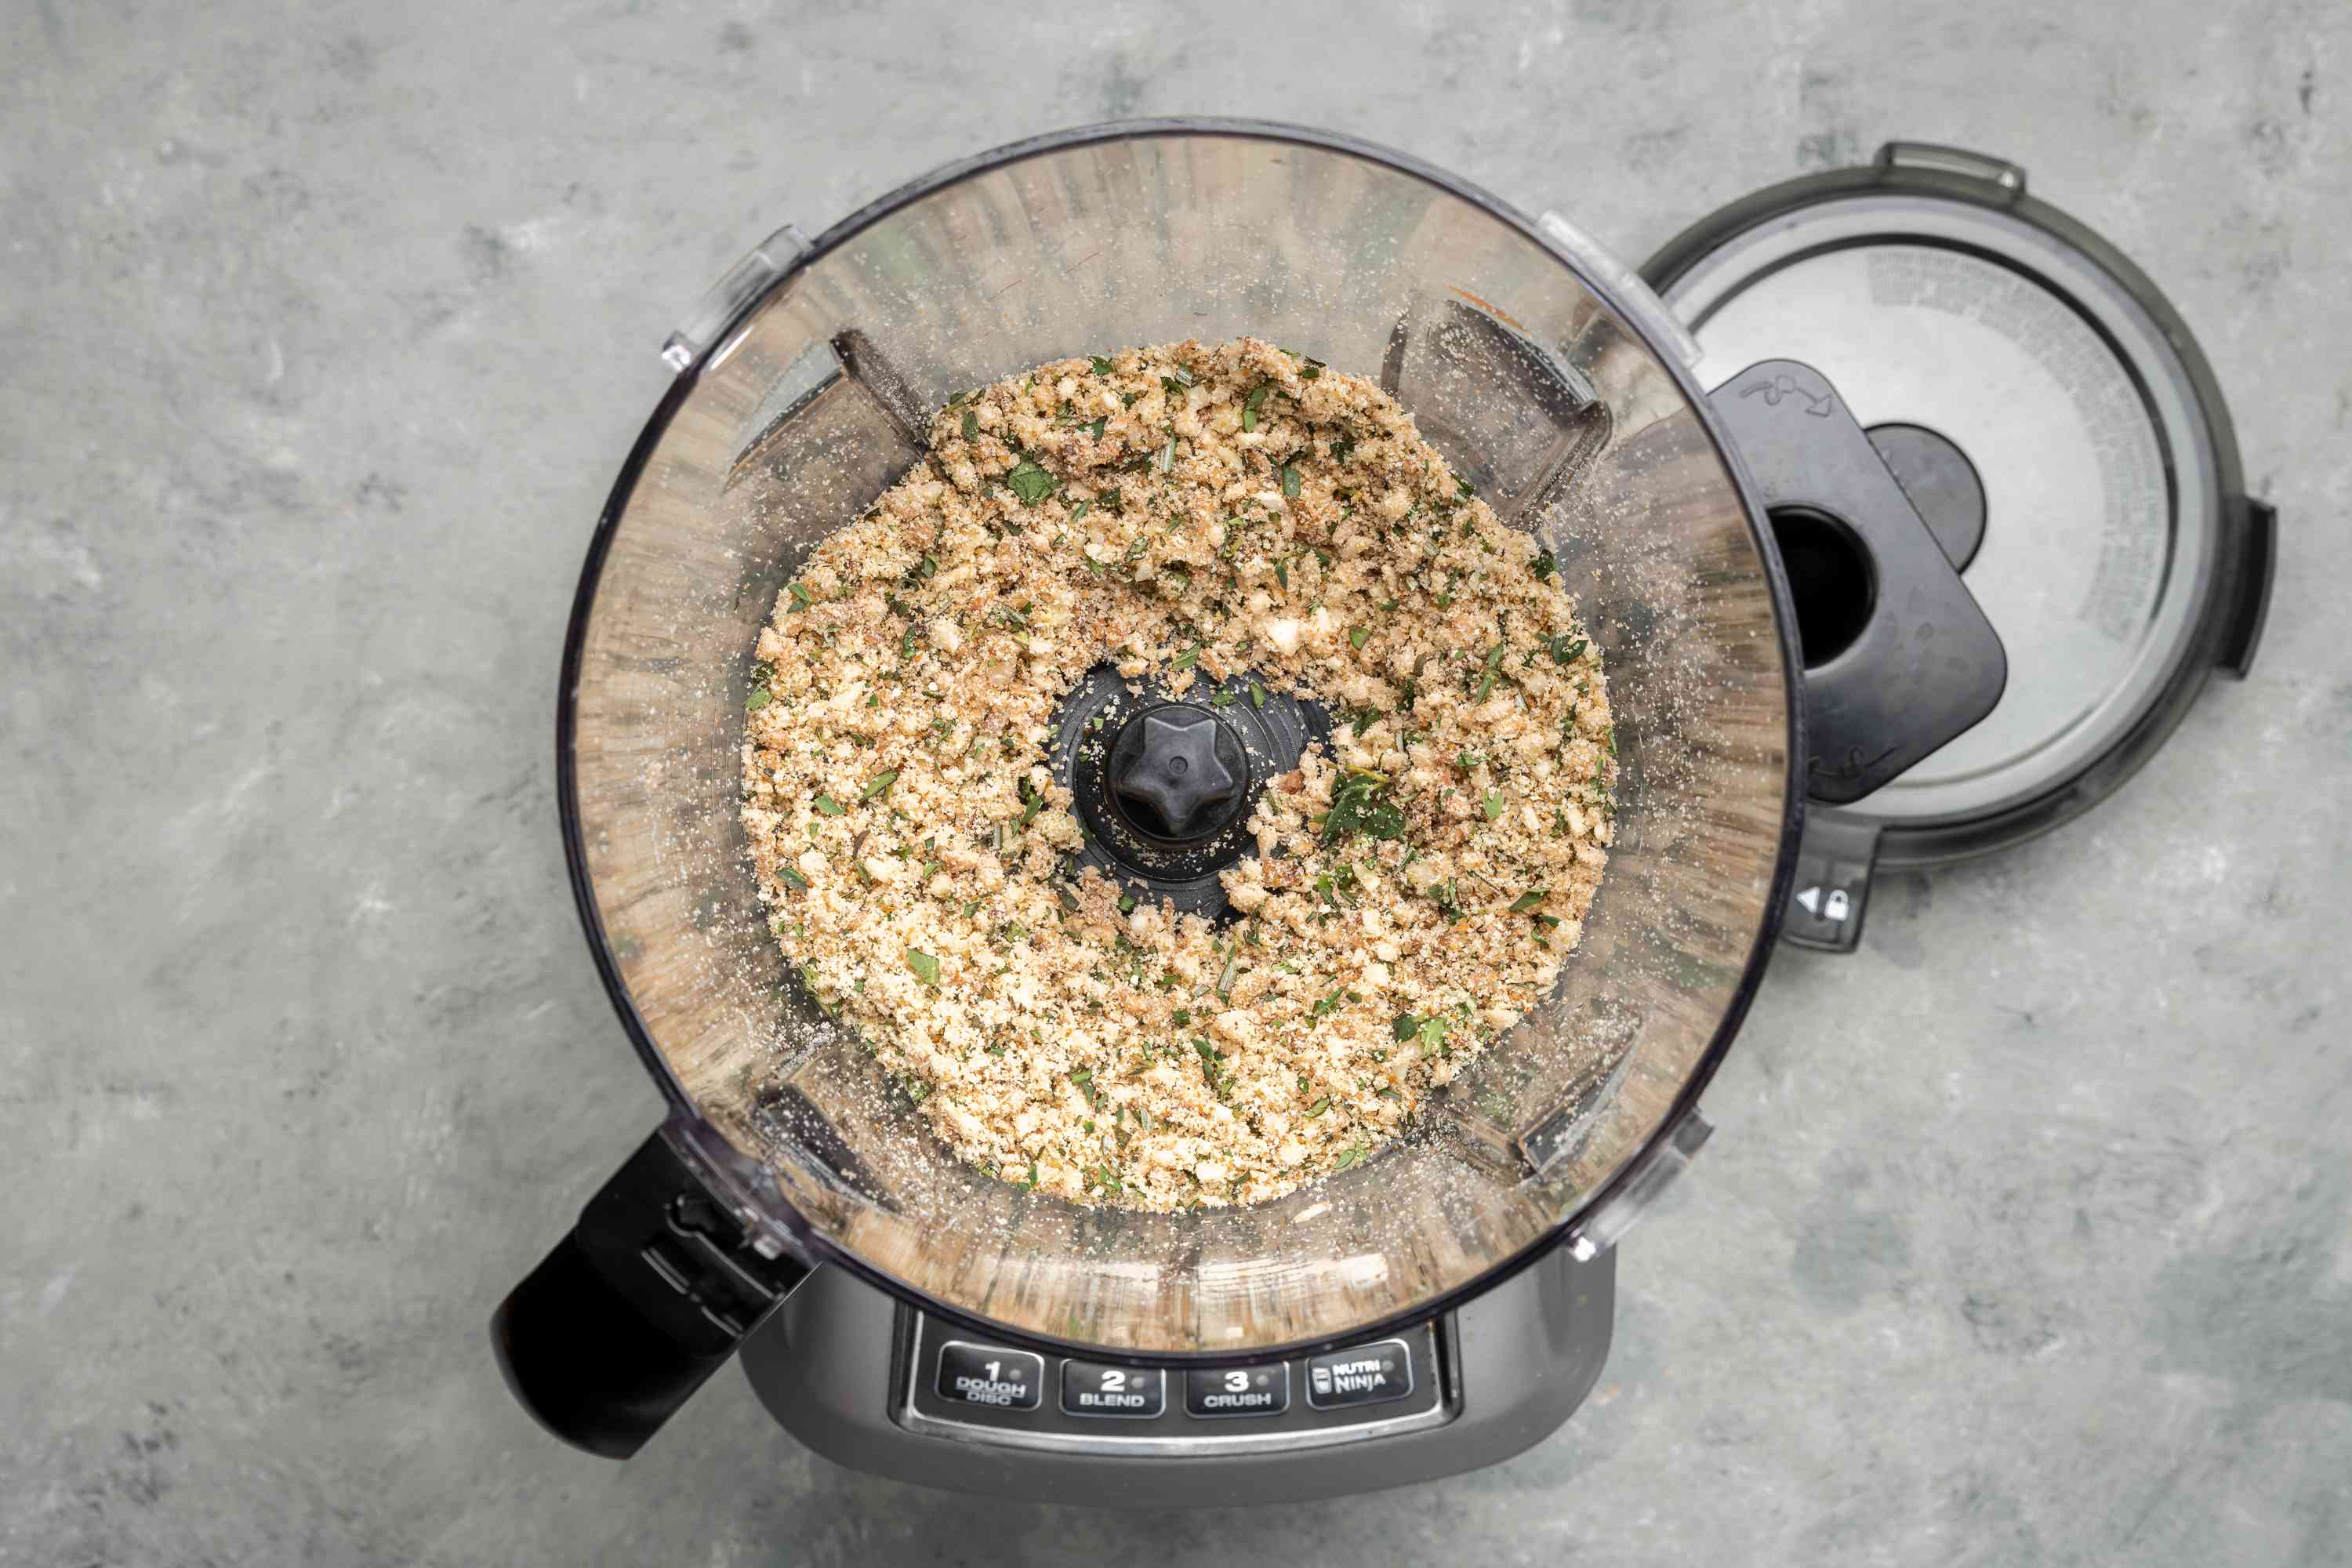 Herb and breadcrumb mixture in a food processor